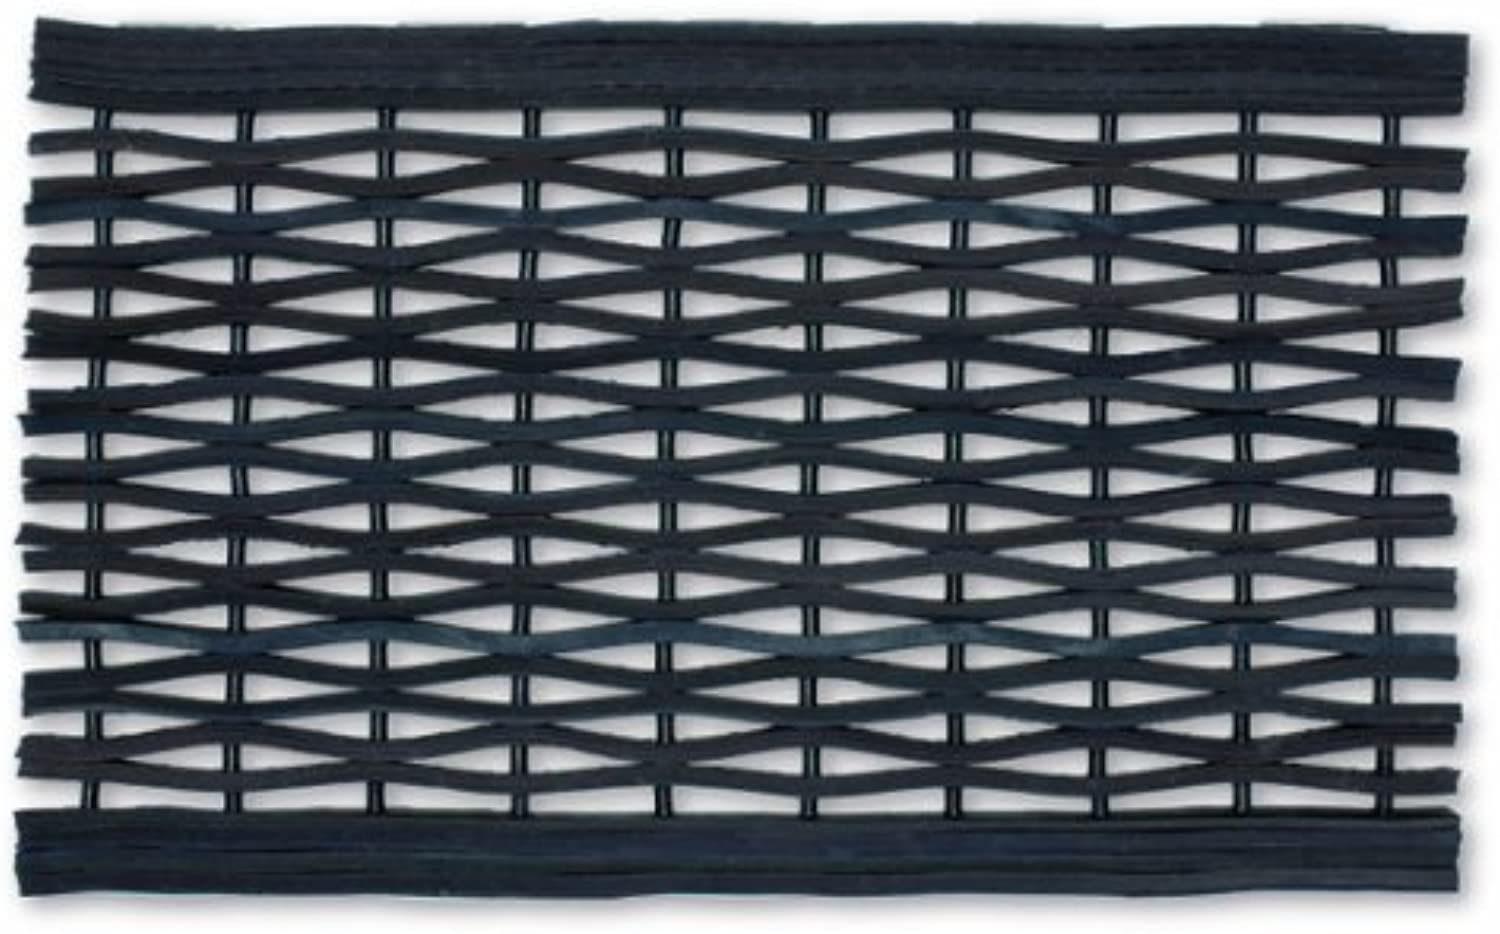 William Armes Dandy Link Mat from recycled tyres 60x35cm by Dandy